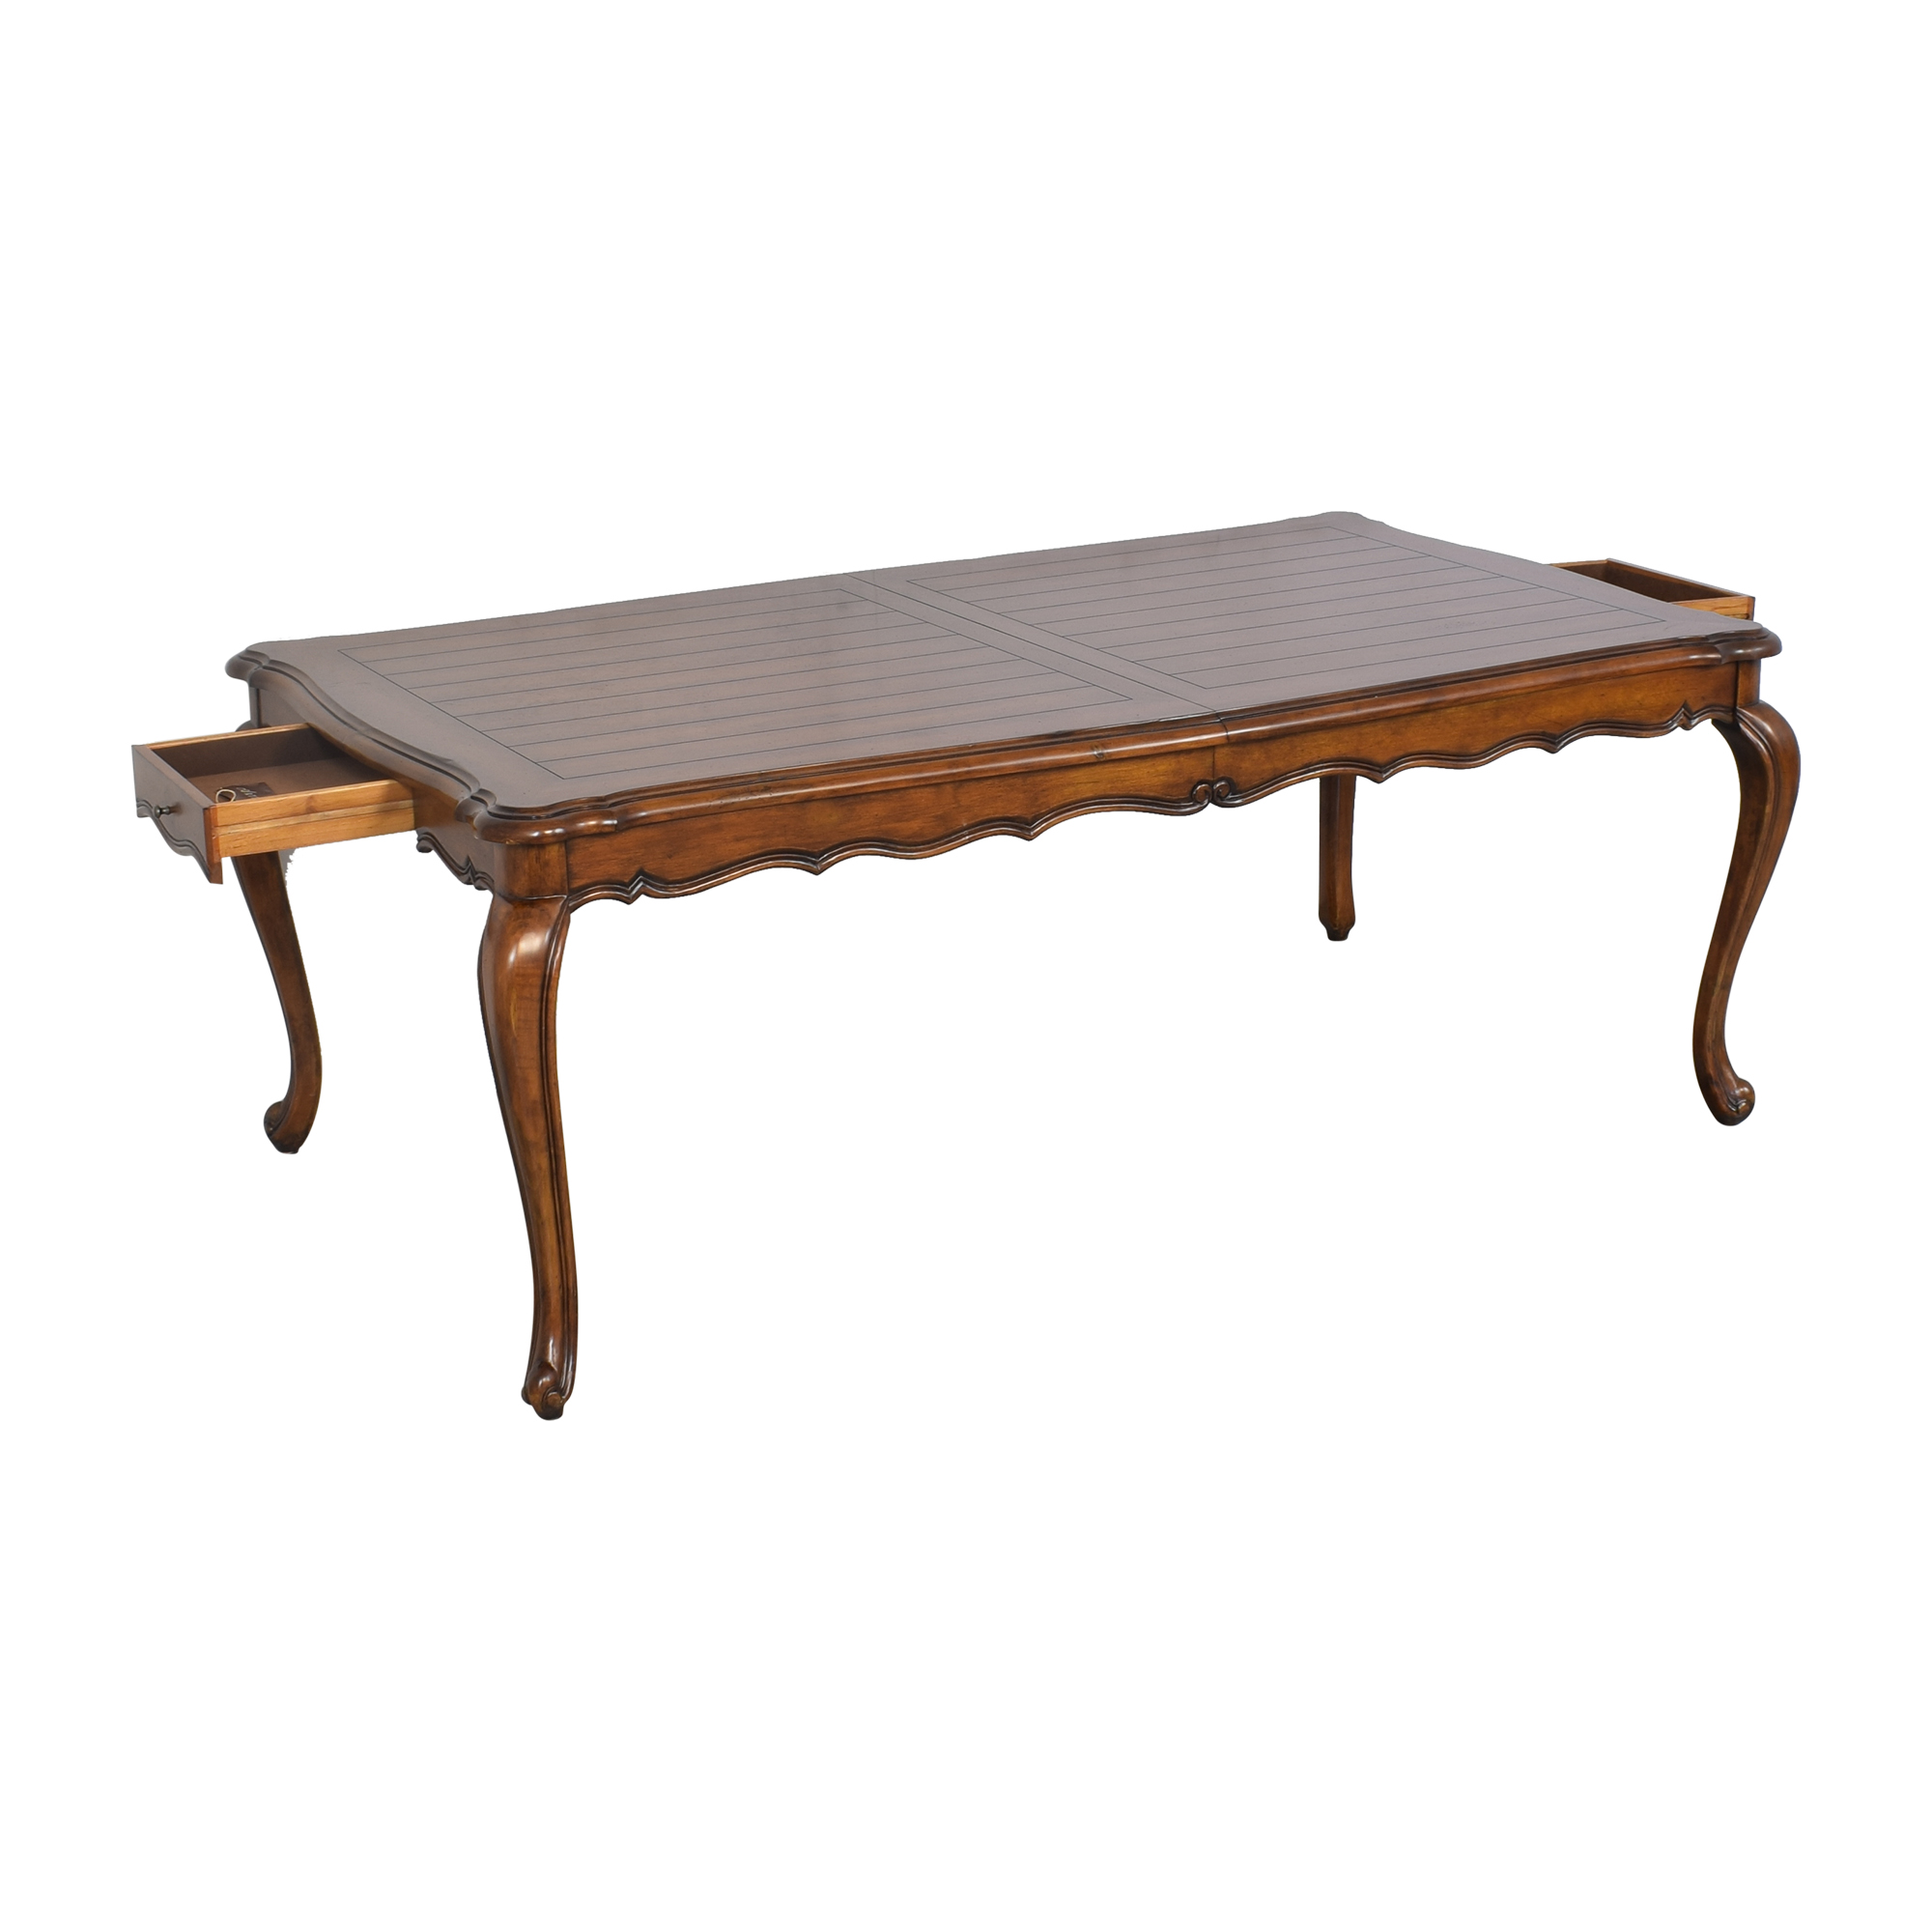 shop Artistica Artistica Extendable Dining Table online